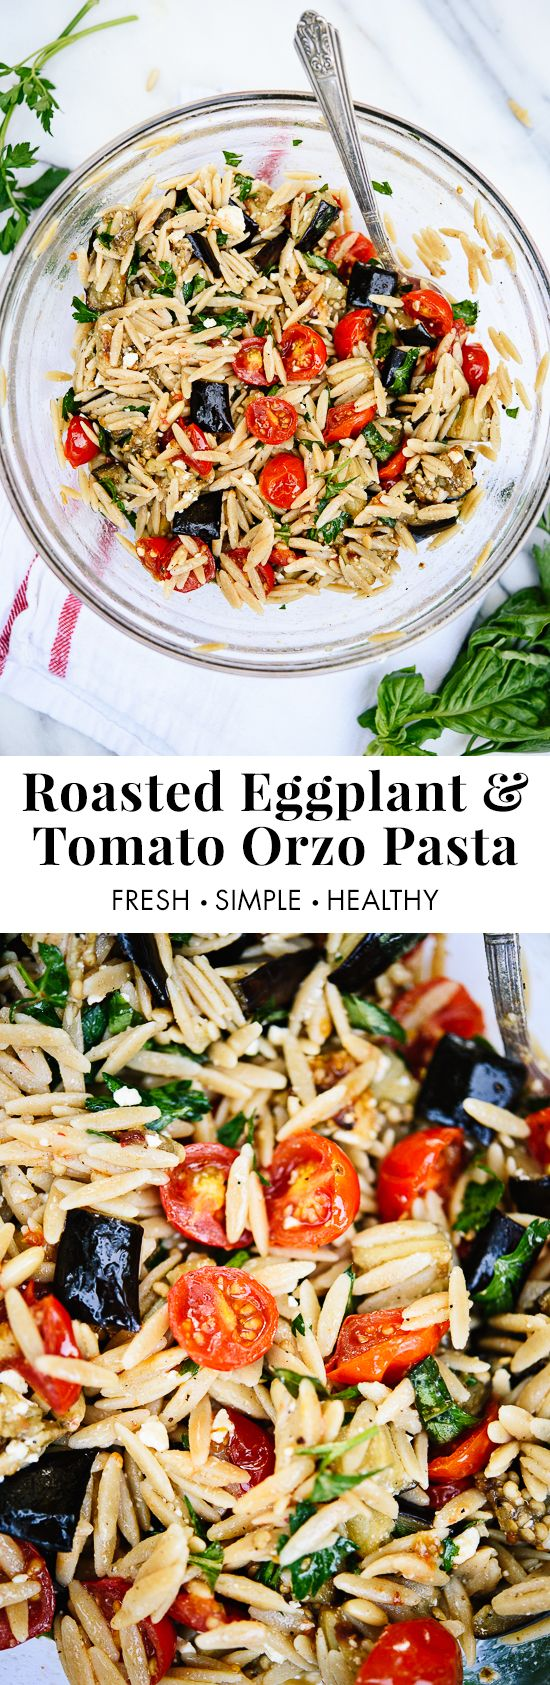 Roasted eggplant, tomato and feta pasta! It's a super easy and healthy weeknight dinner. cookieandkate.com